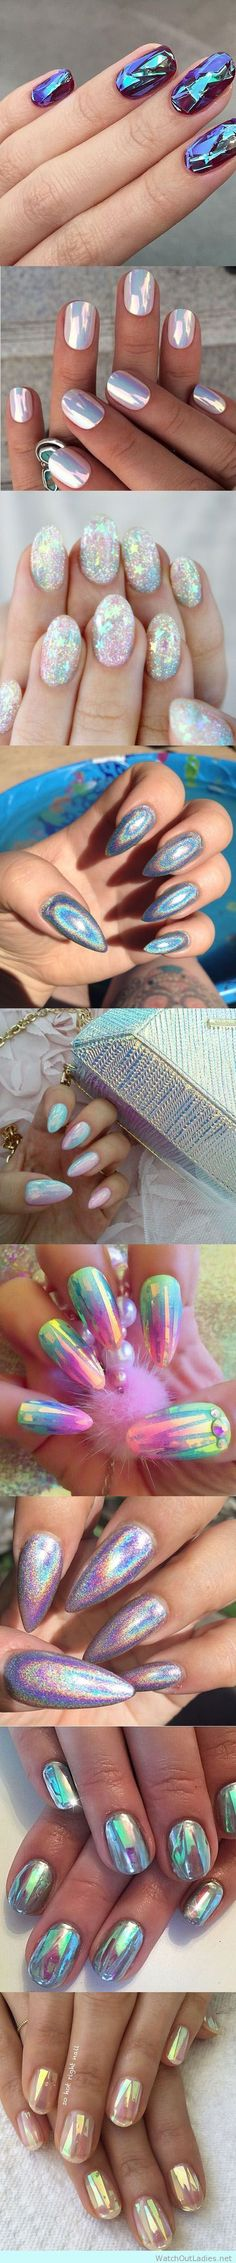 Hologramic trend nail for this season